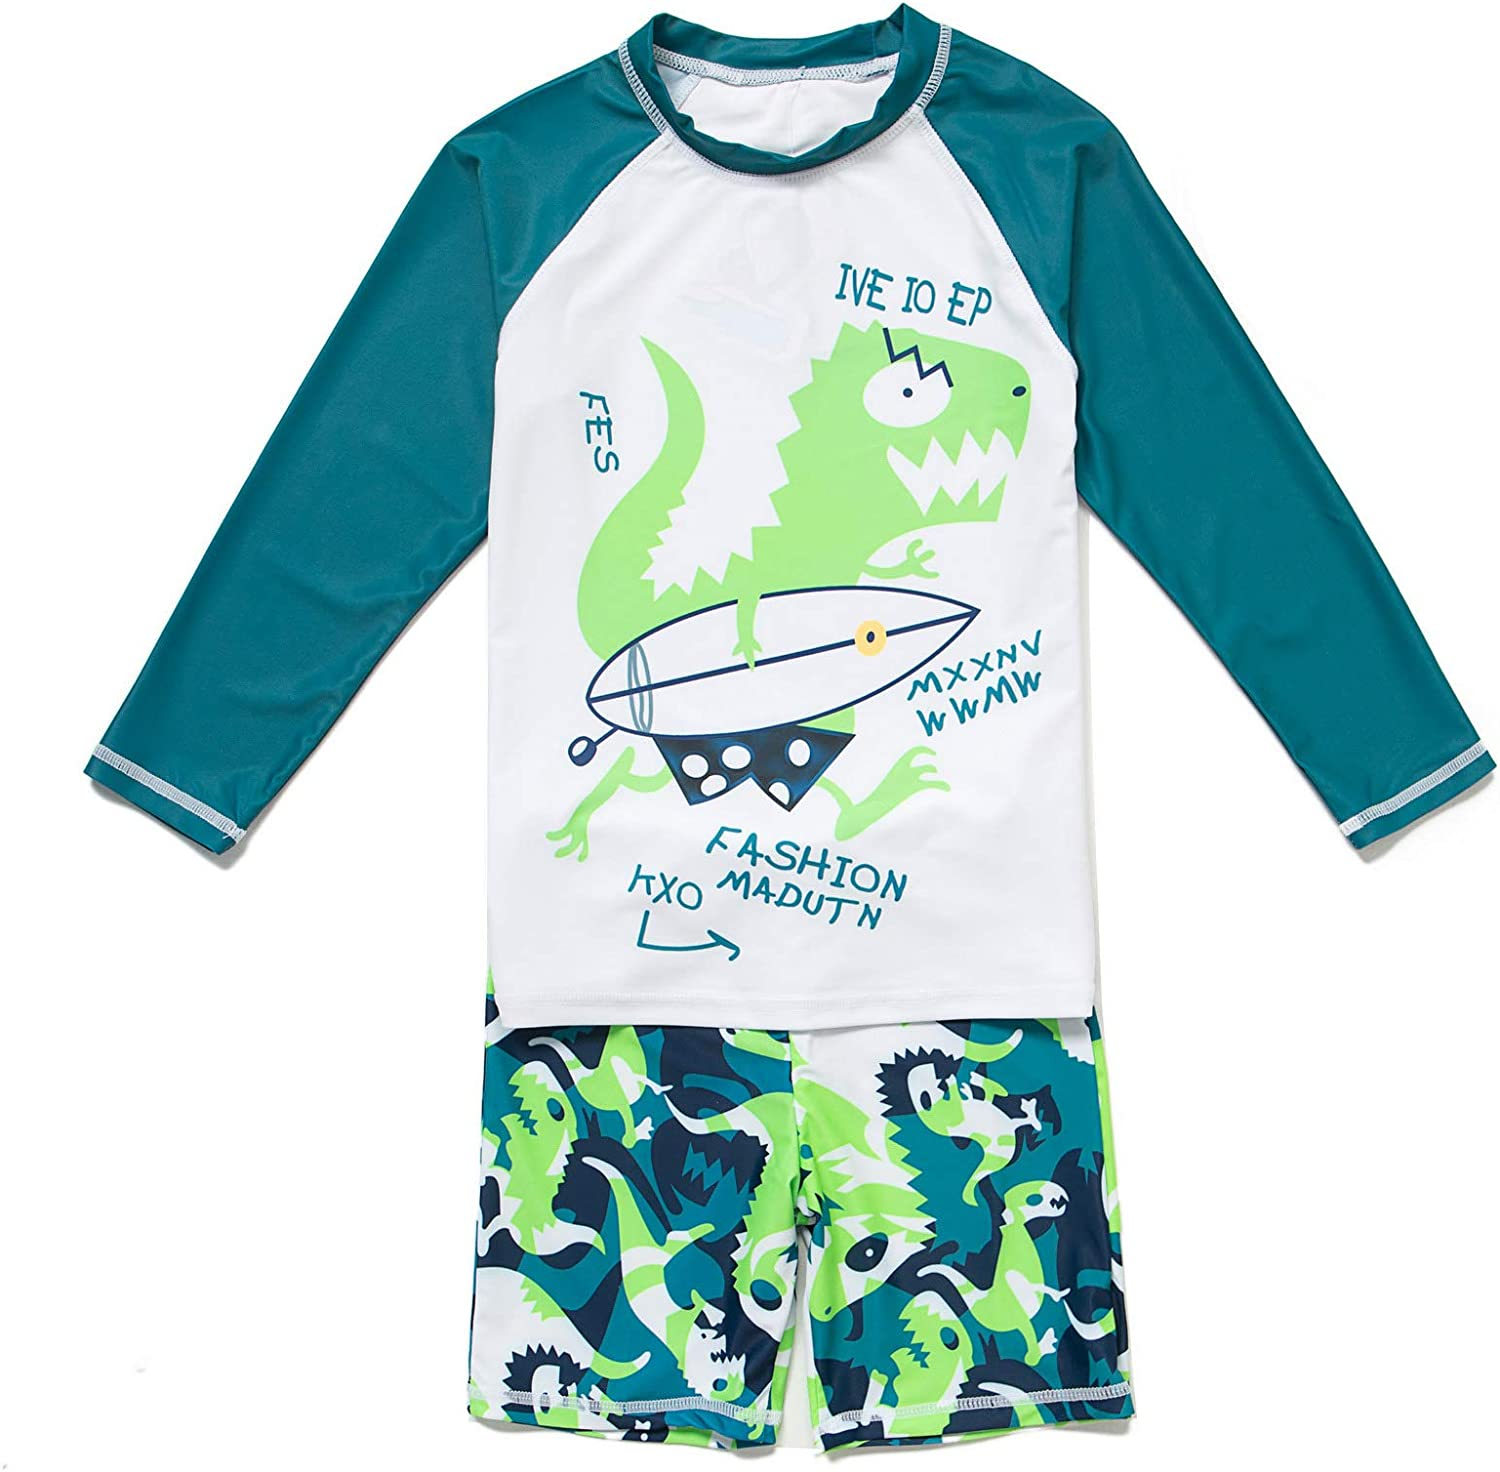 BONVERANO Toddler Boys Rashguards UPF 50 Sun Protection Two Pieces Swimsuit with Sun Cap